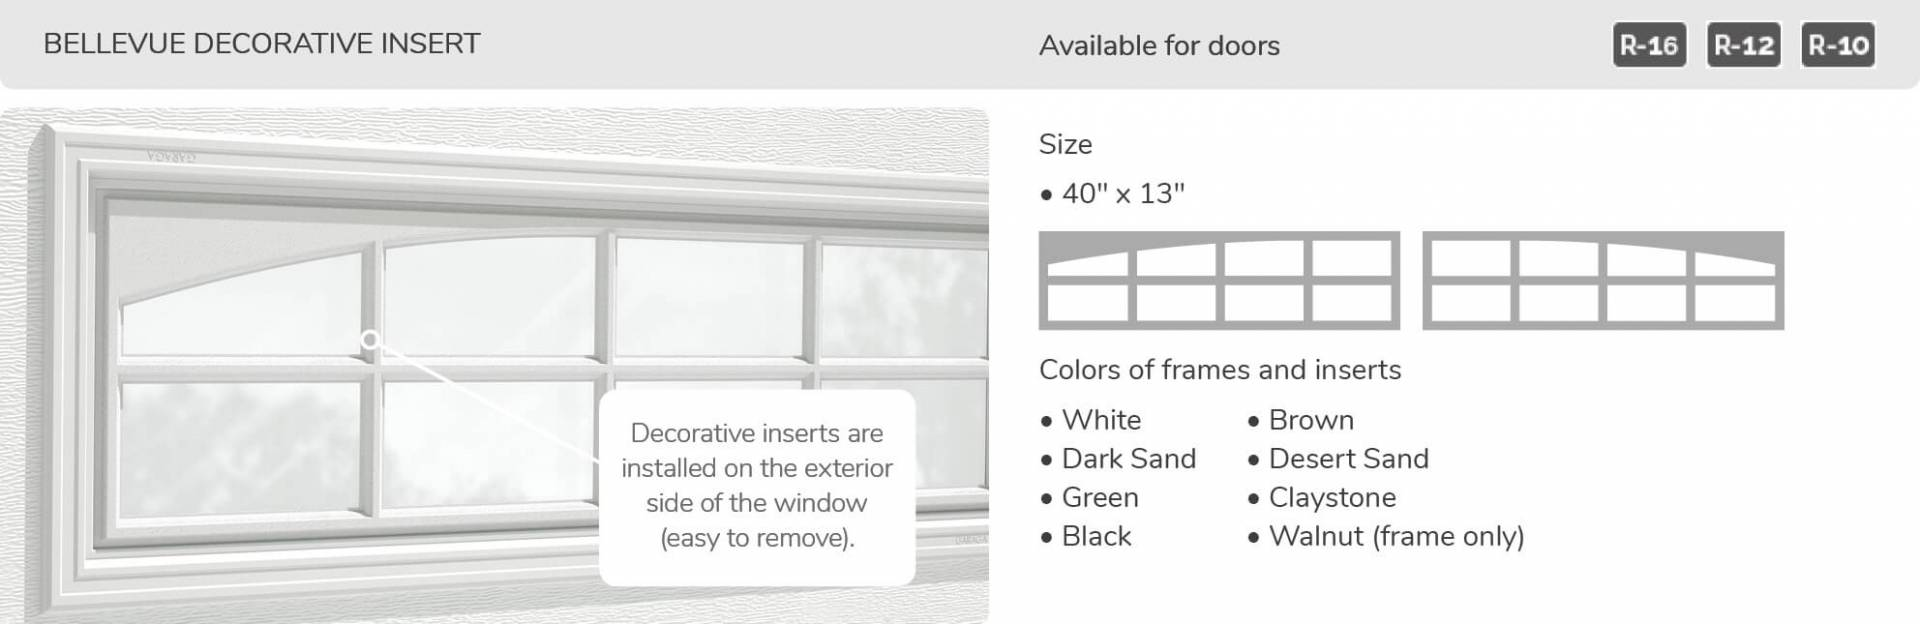 Bellevue Decorative Insert, 40' x 13', available for doors R-16, R-12 and R-10